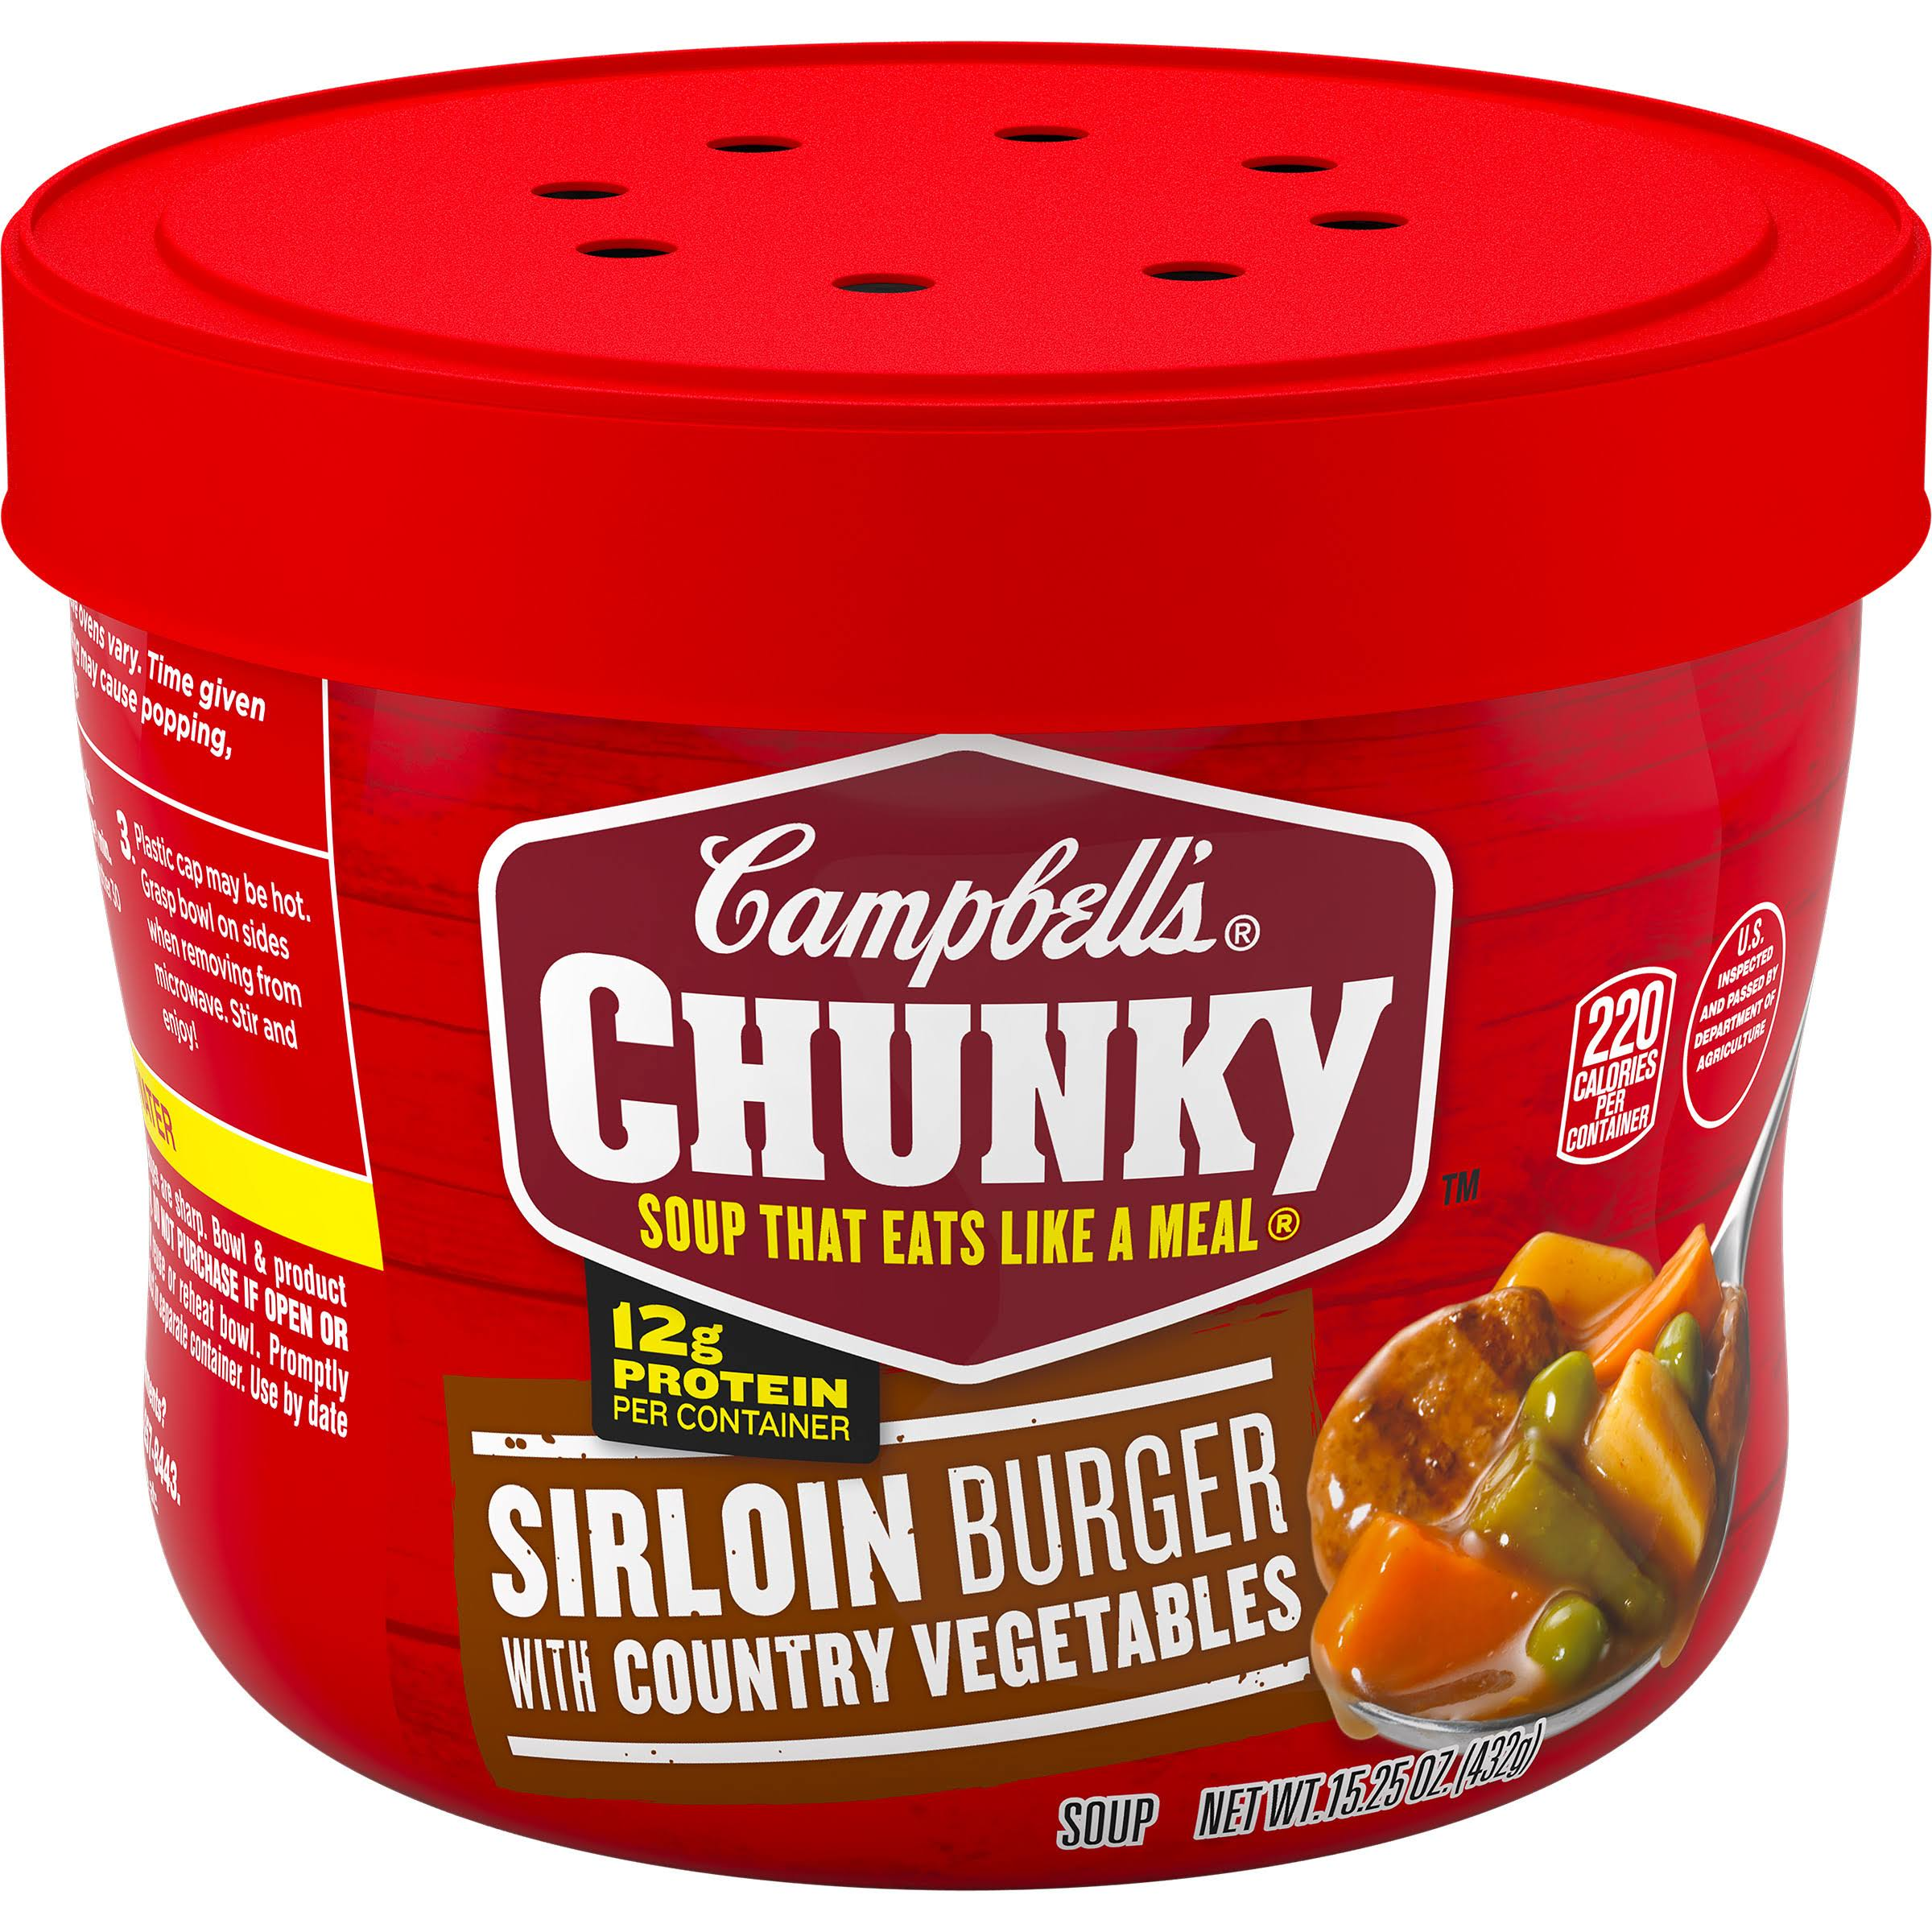 Campbell's Chunky Soup - Sirloin Burger with Country Vegetables, 15.25oz, 8 Pack